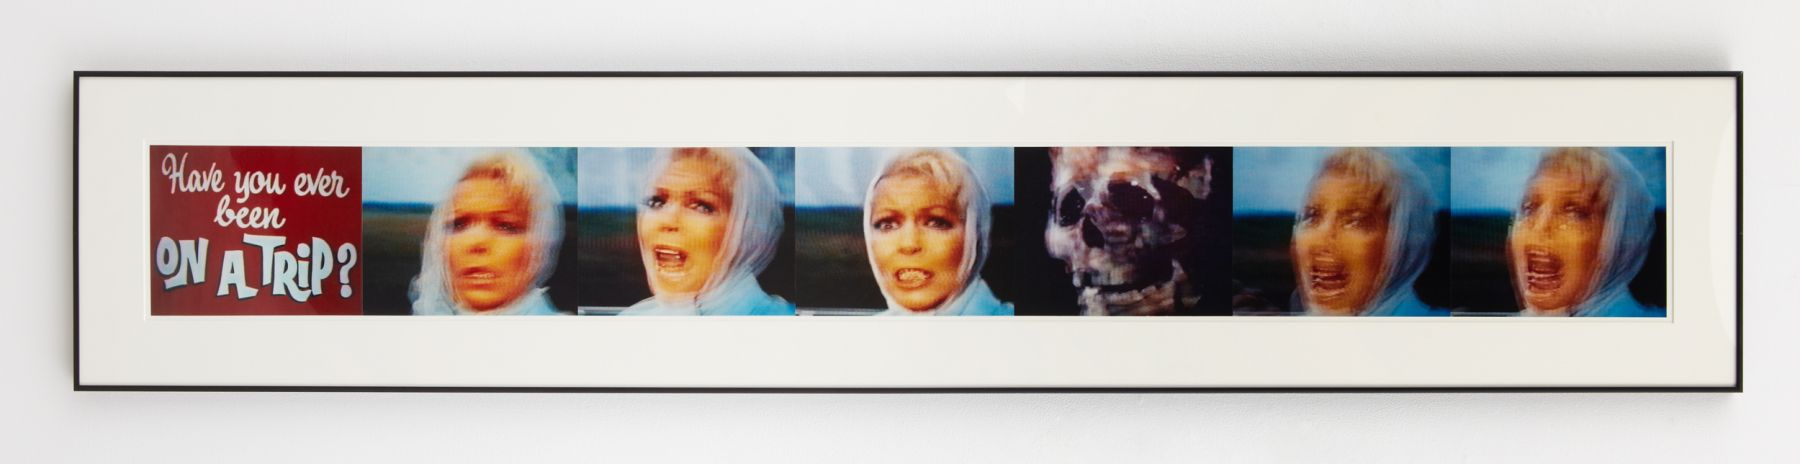 """""""have you ever been on a trip?"""" + series of portraits of a woman with skull by john waters"""